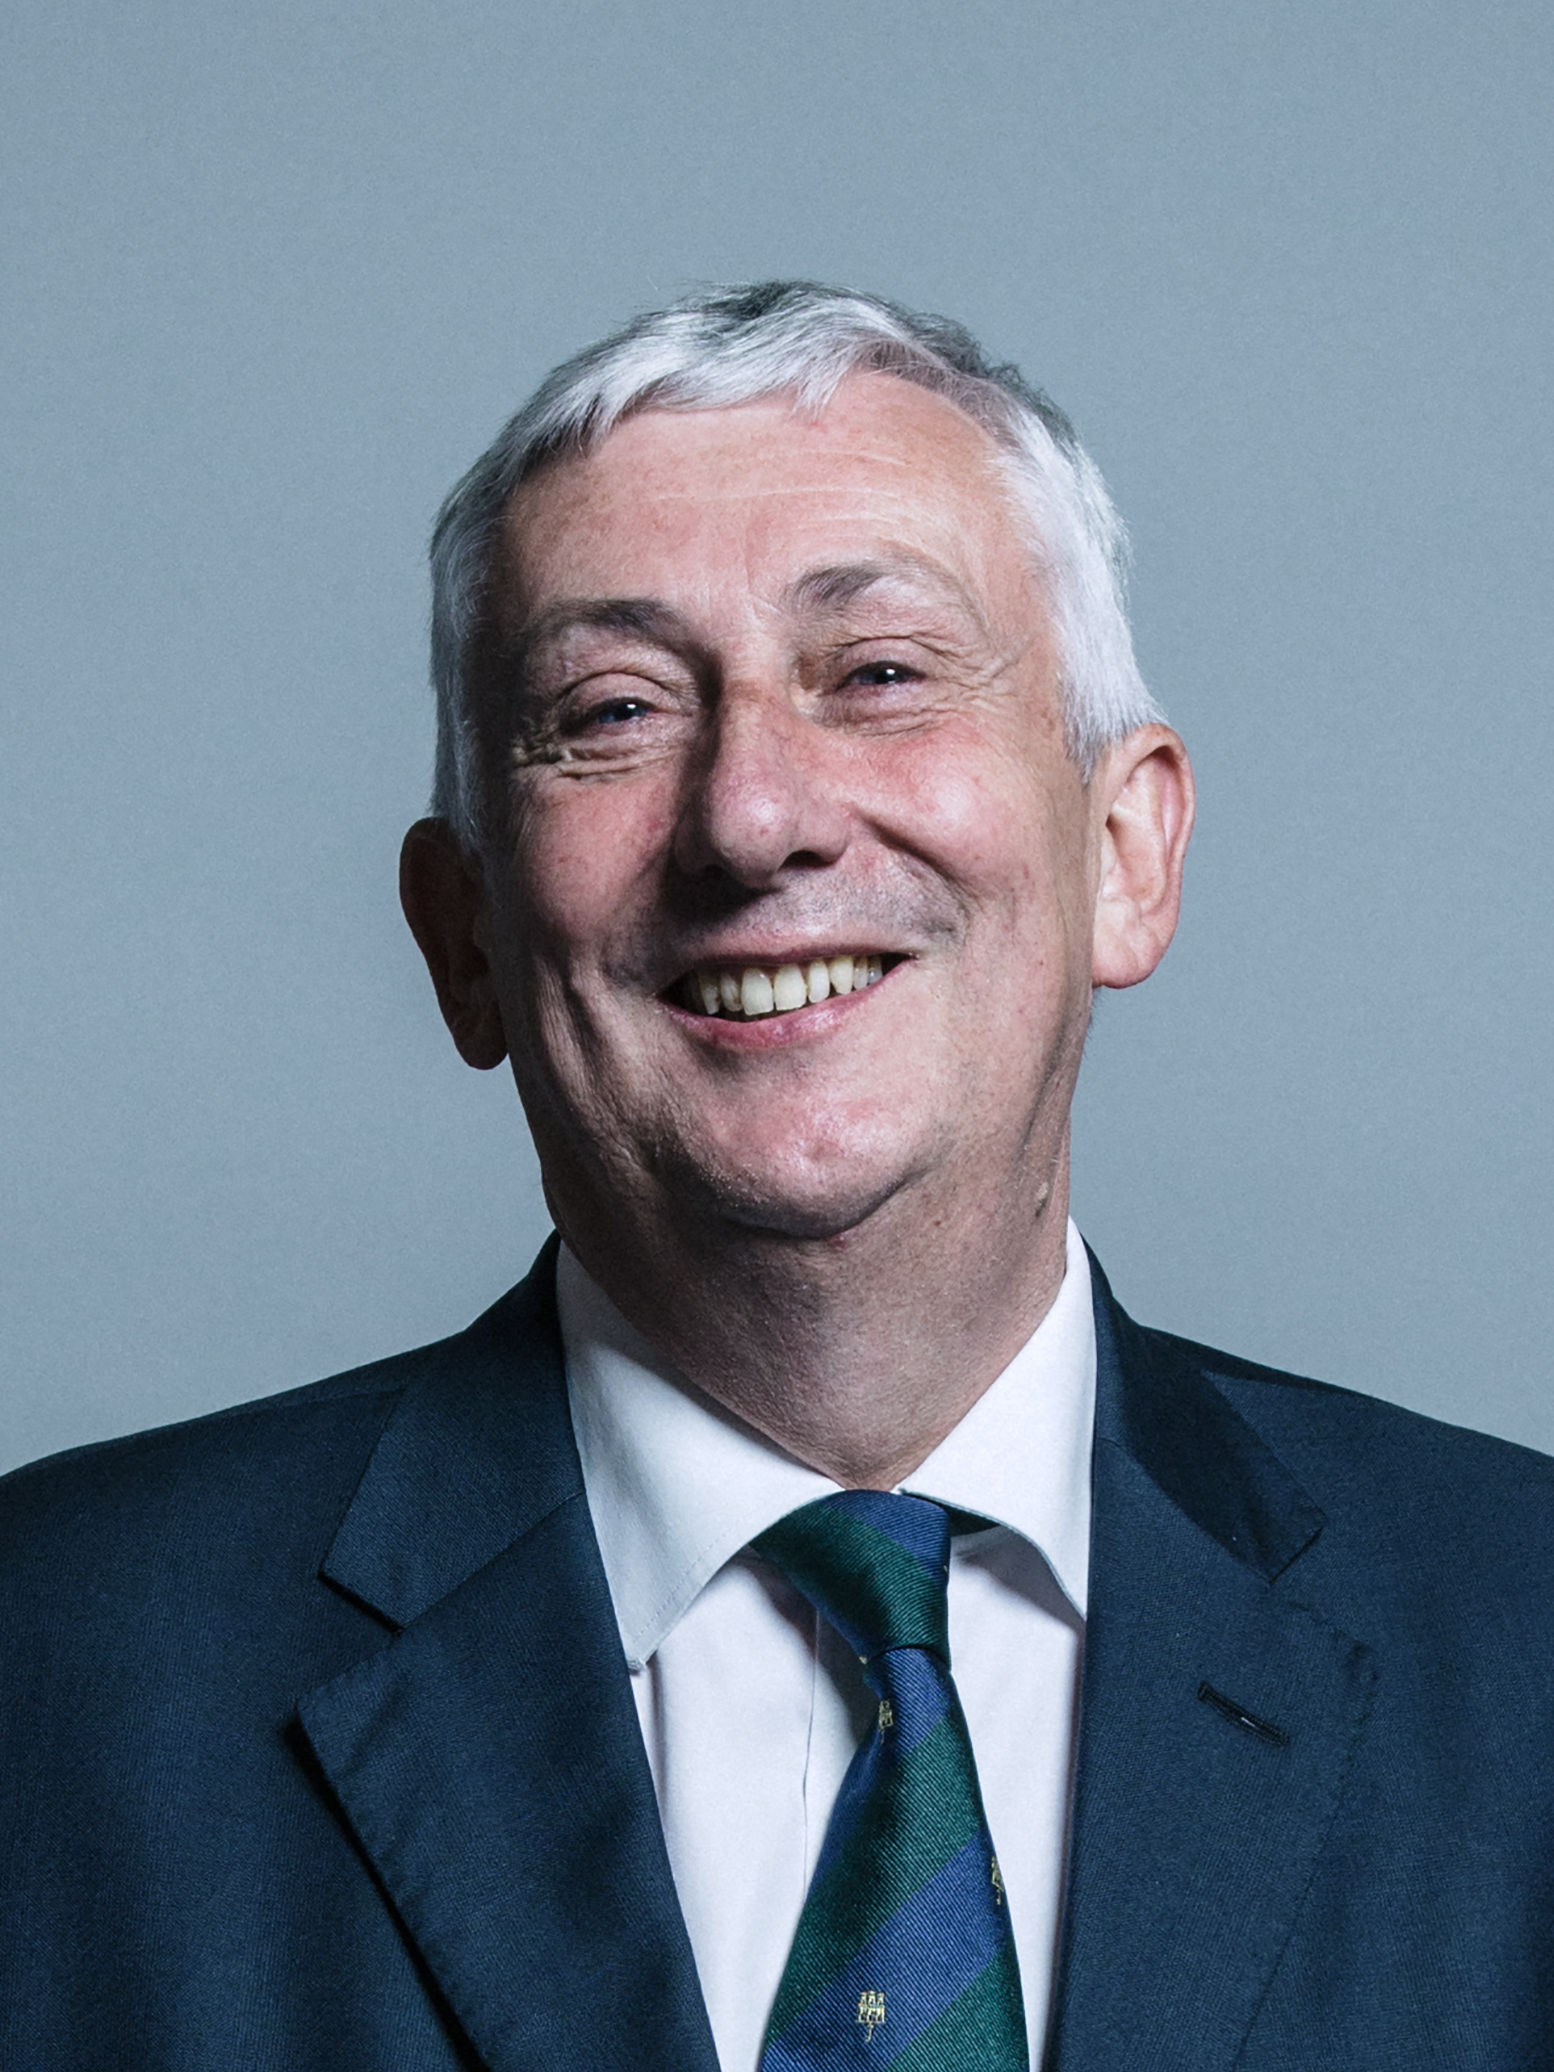 Lindsay Hoyle – 2020 Statement on Procedure